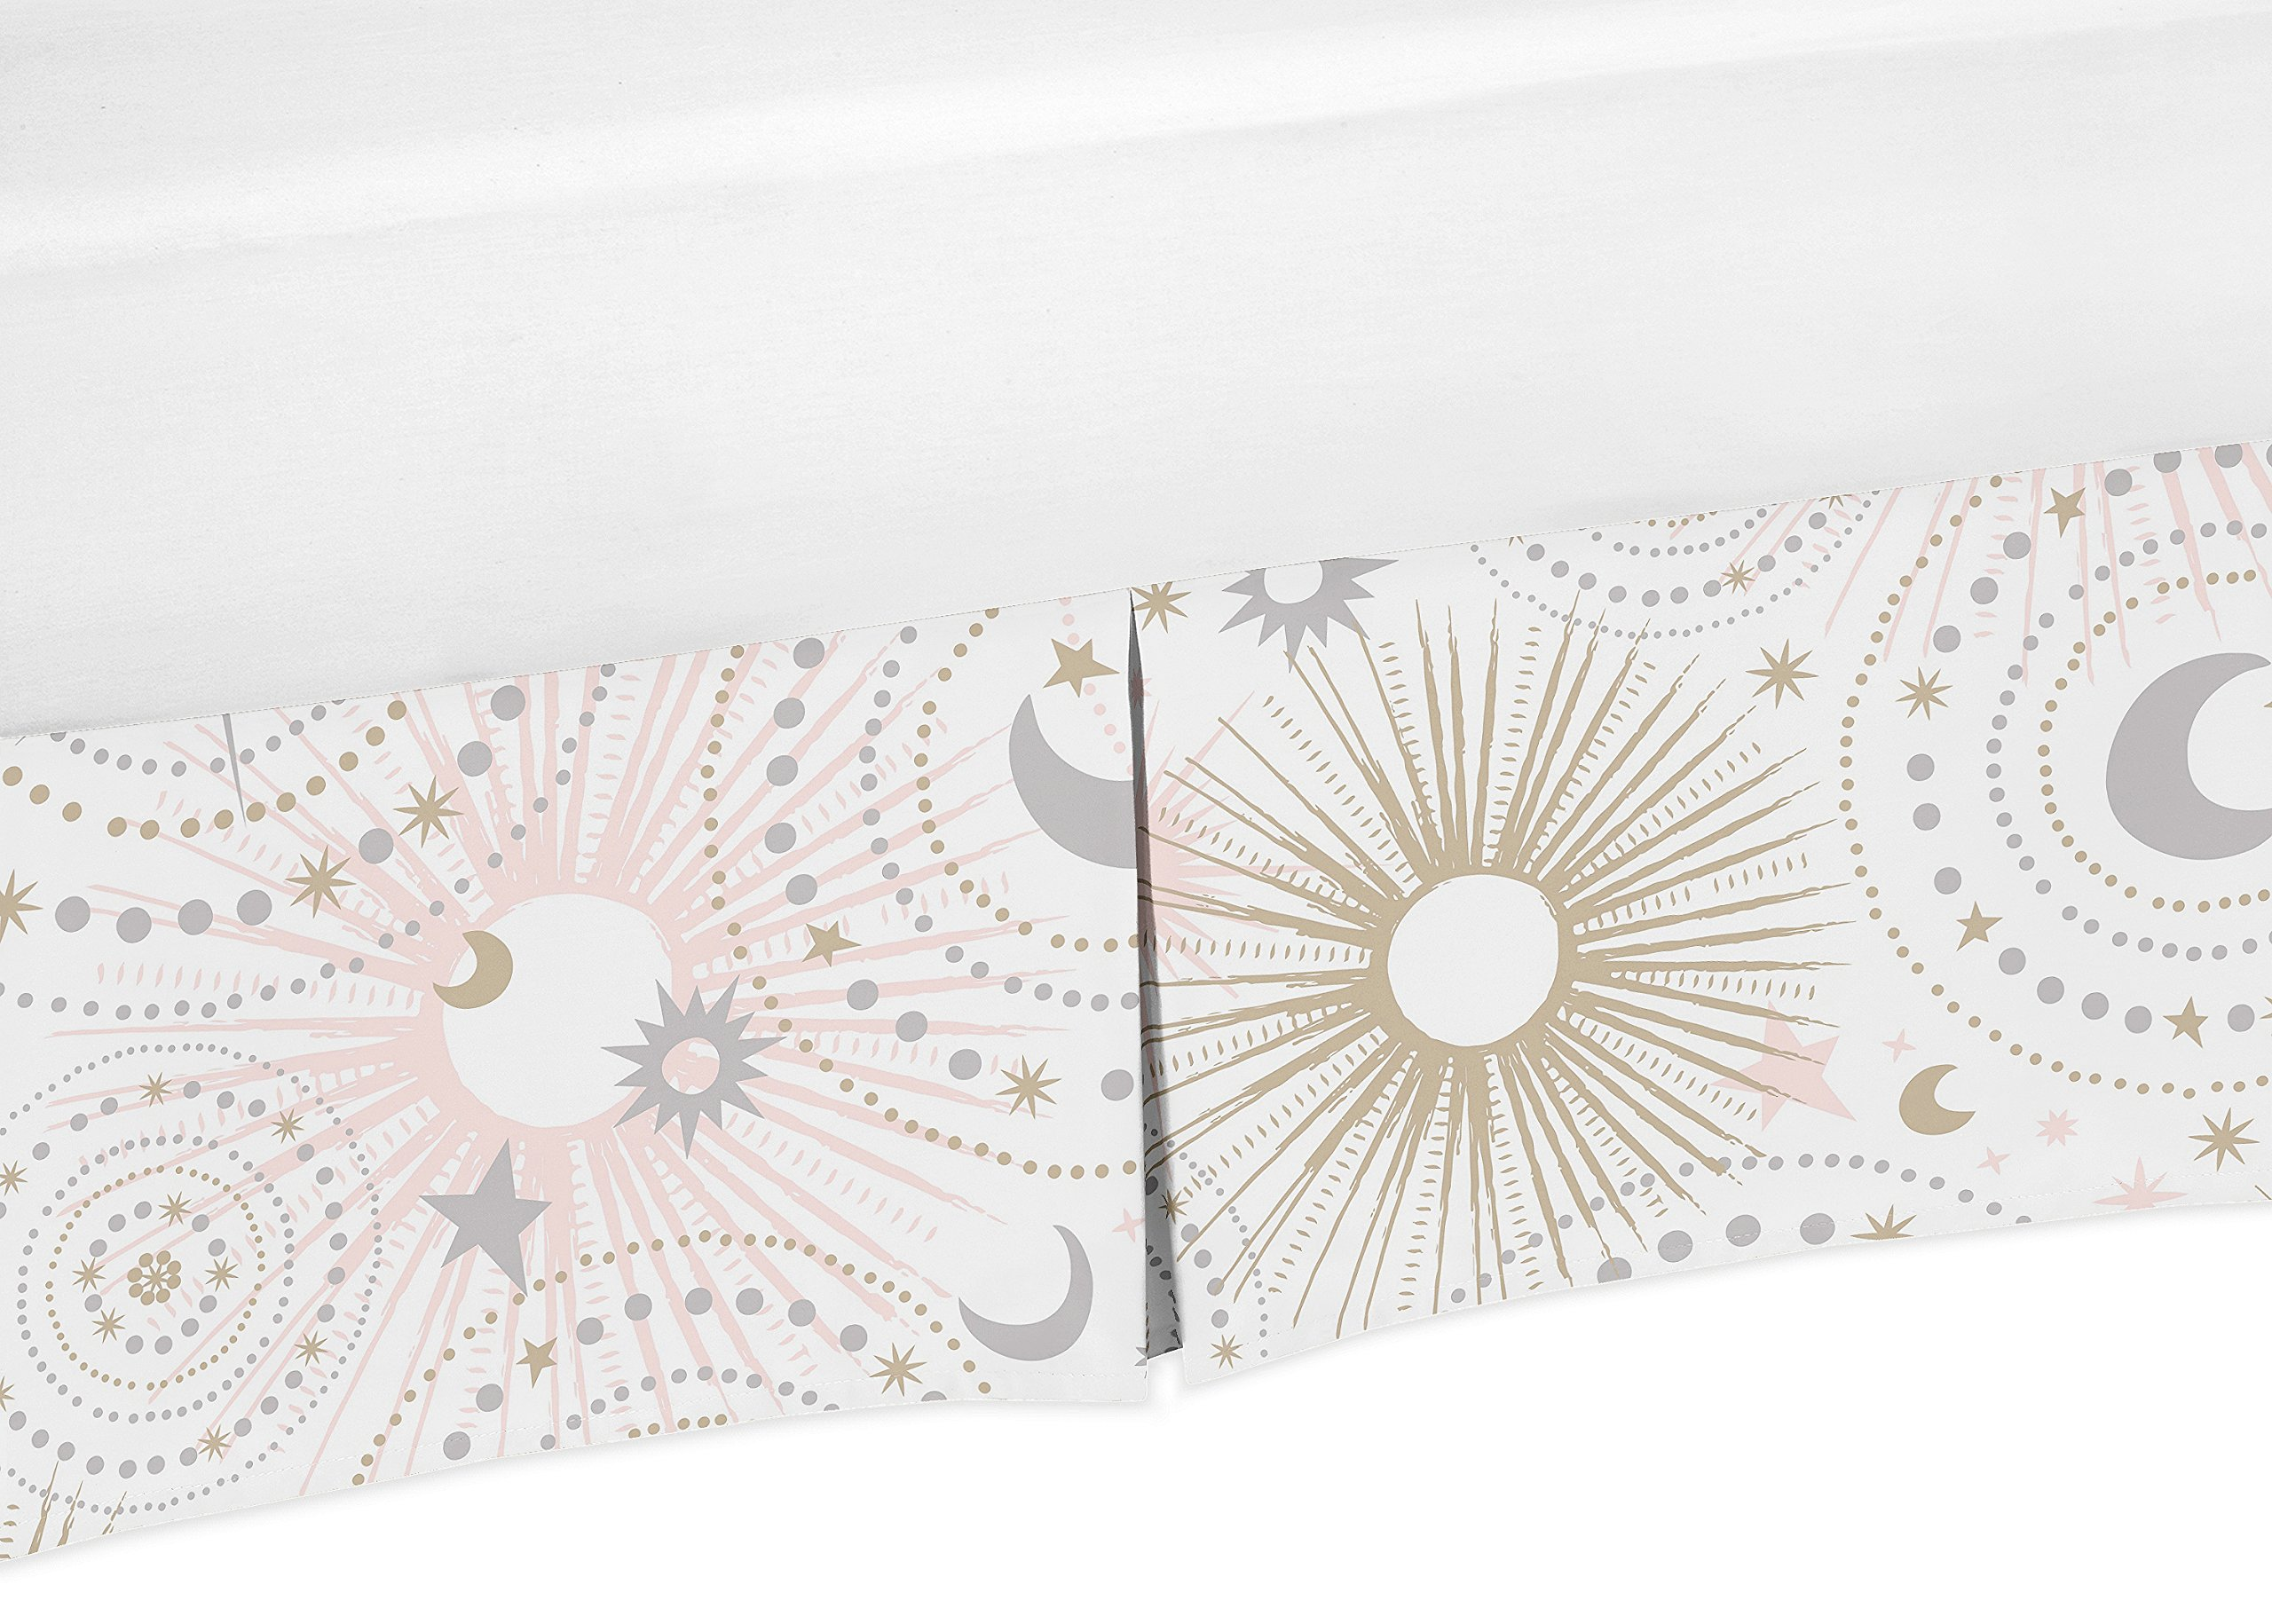 Sweet Jojo Designs Blush Pink, Gold, Grey and White Star and Moon Baby Girl Pleated Crib Bed Skirt Dust Ruffle for Celestial Collection by Sweet Jojo Designs